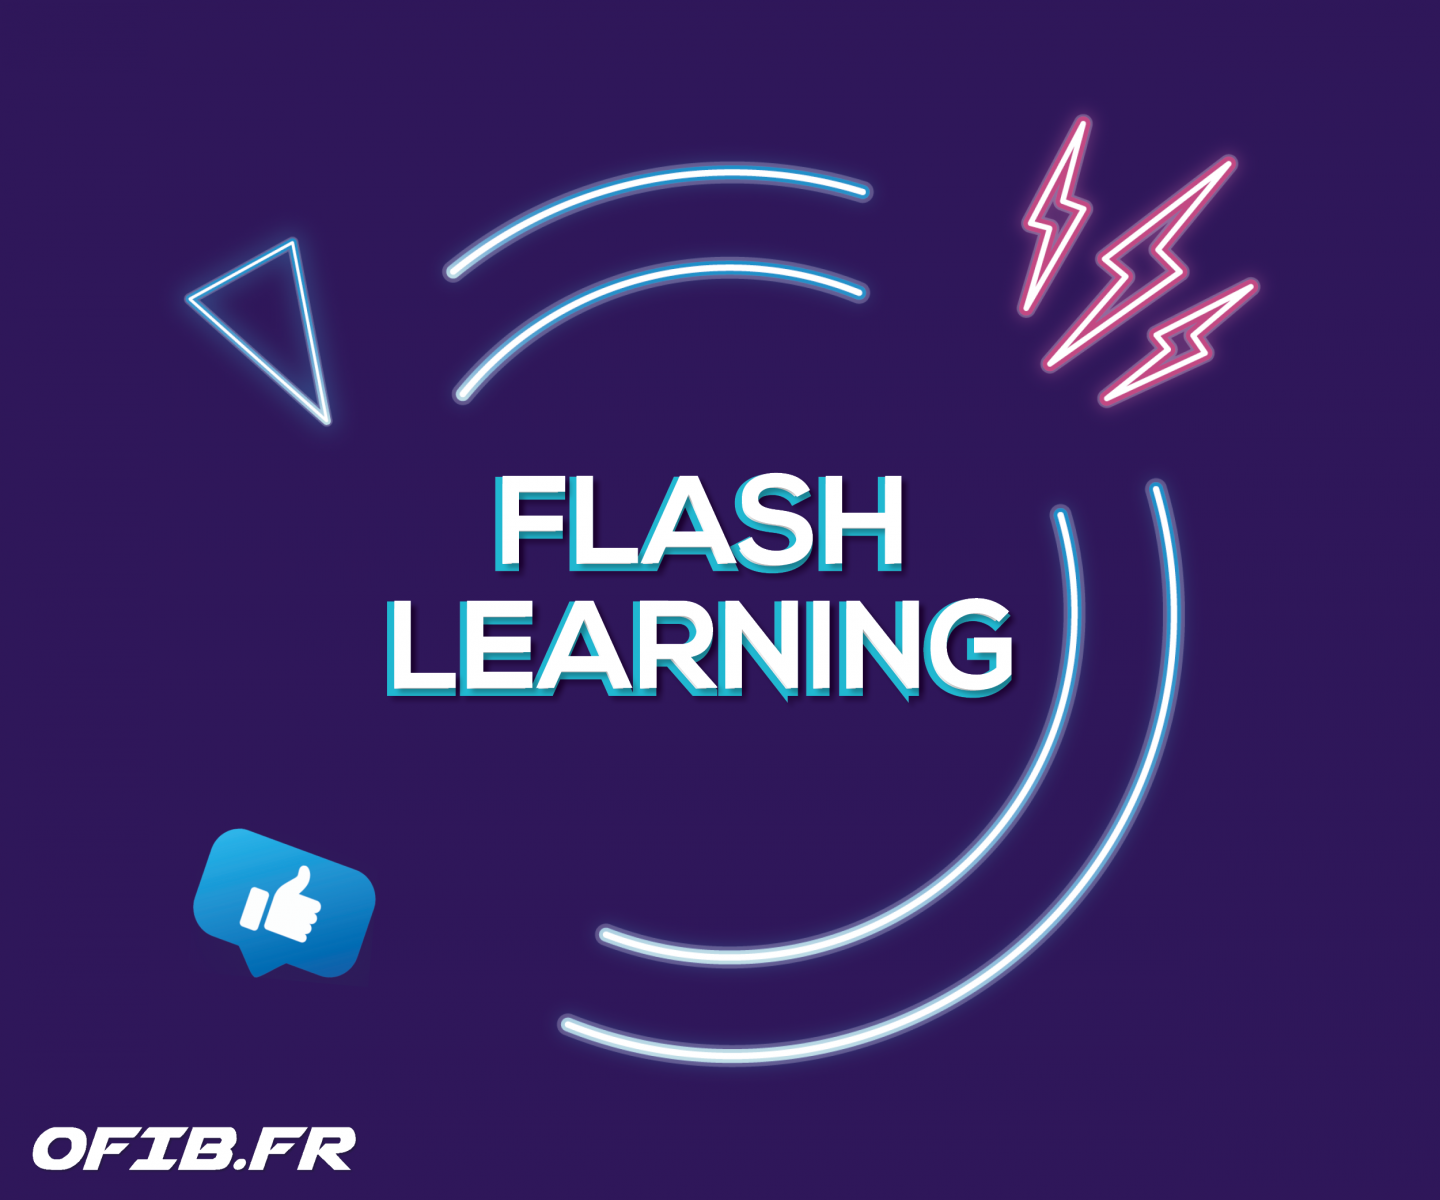 flash learning